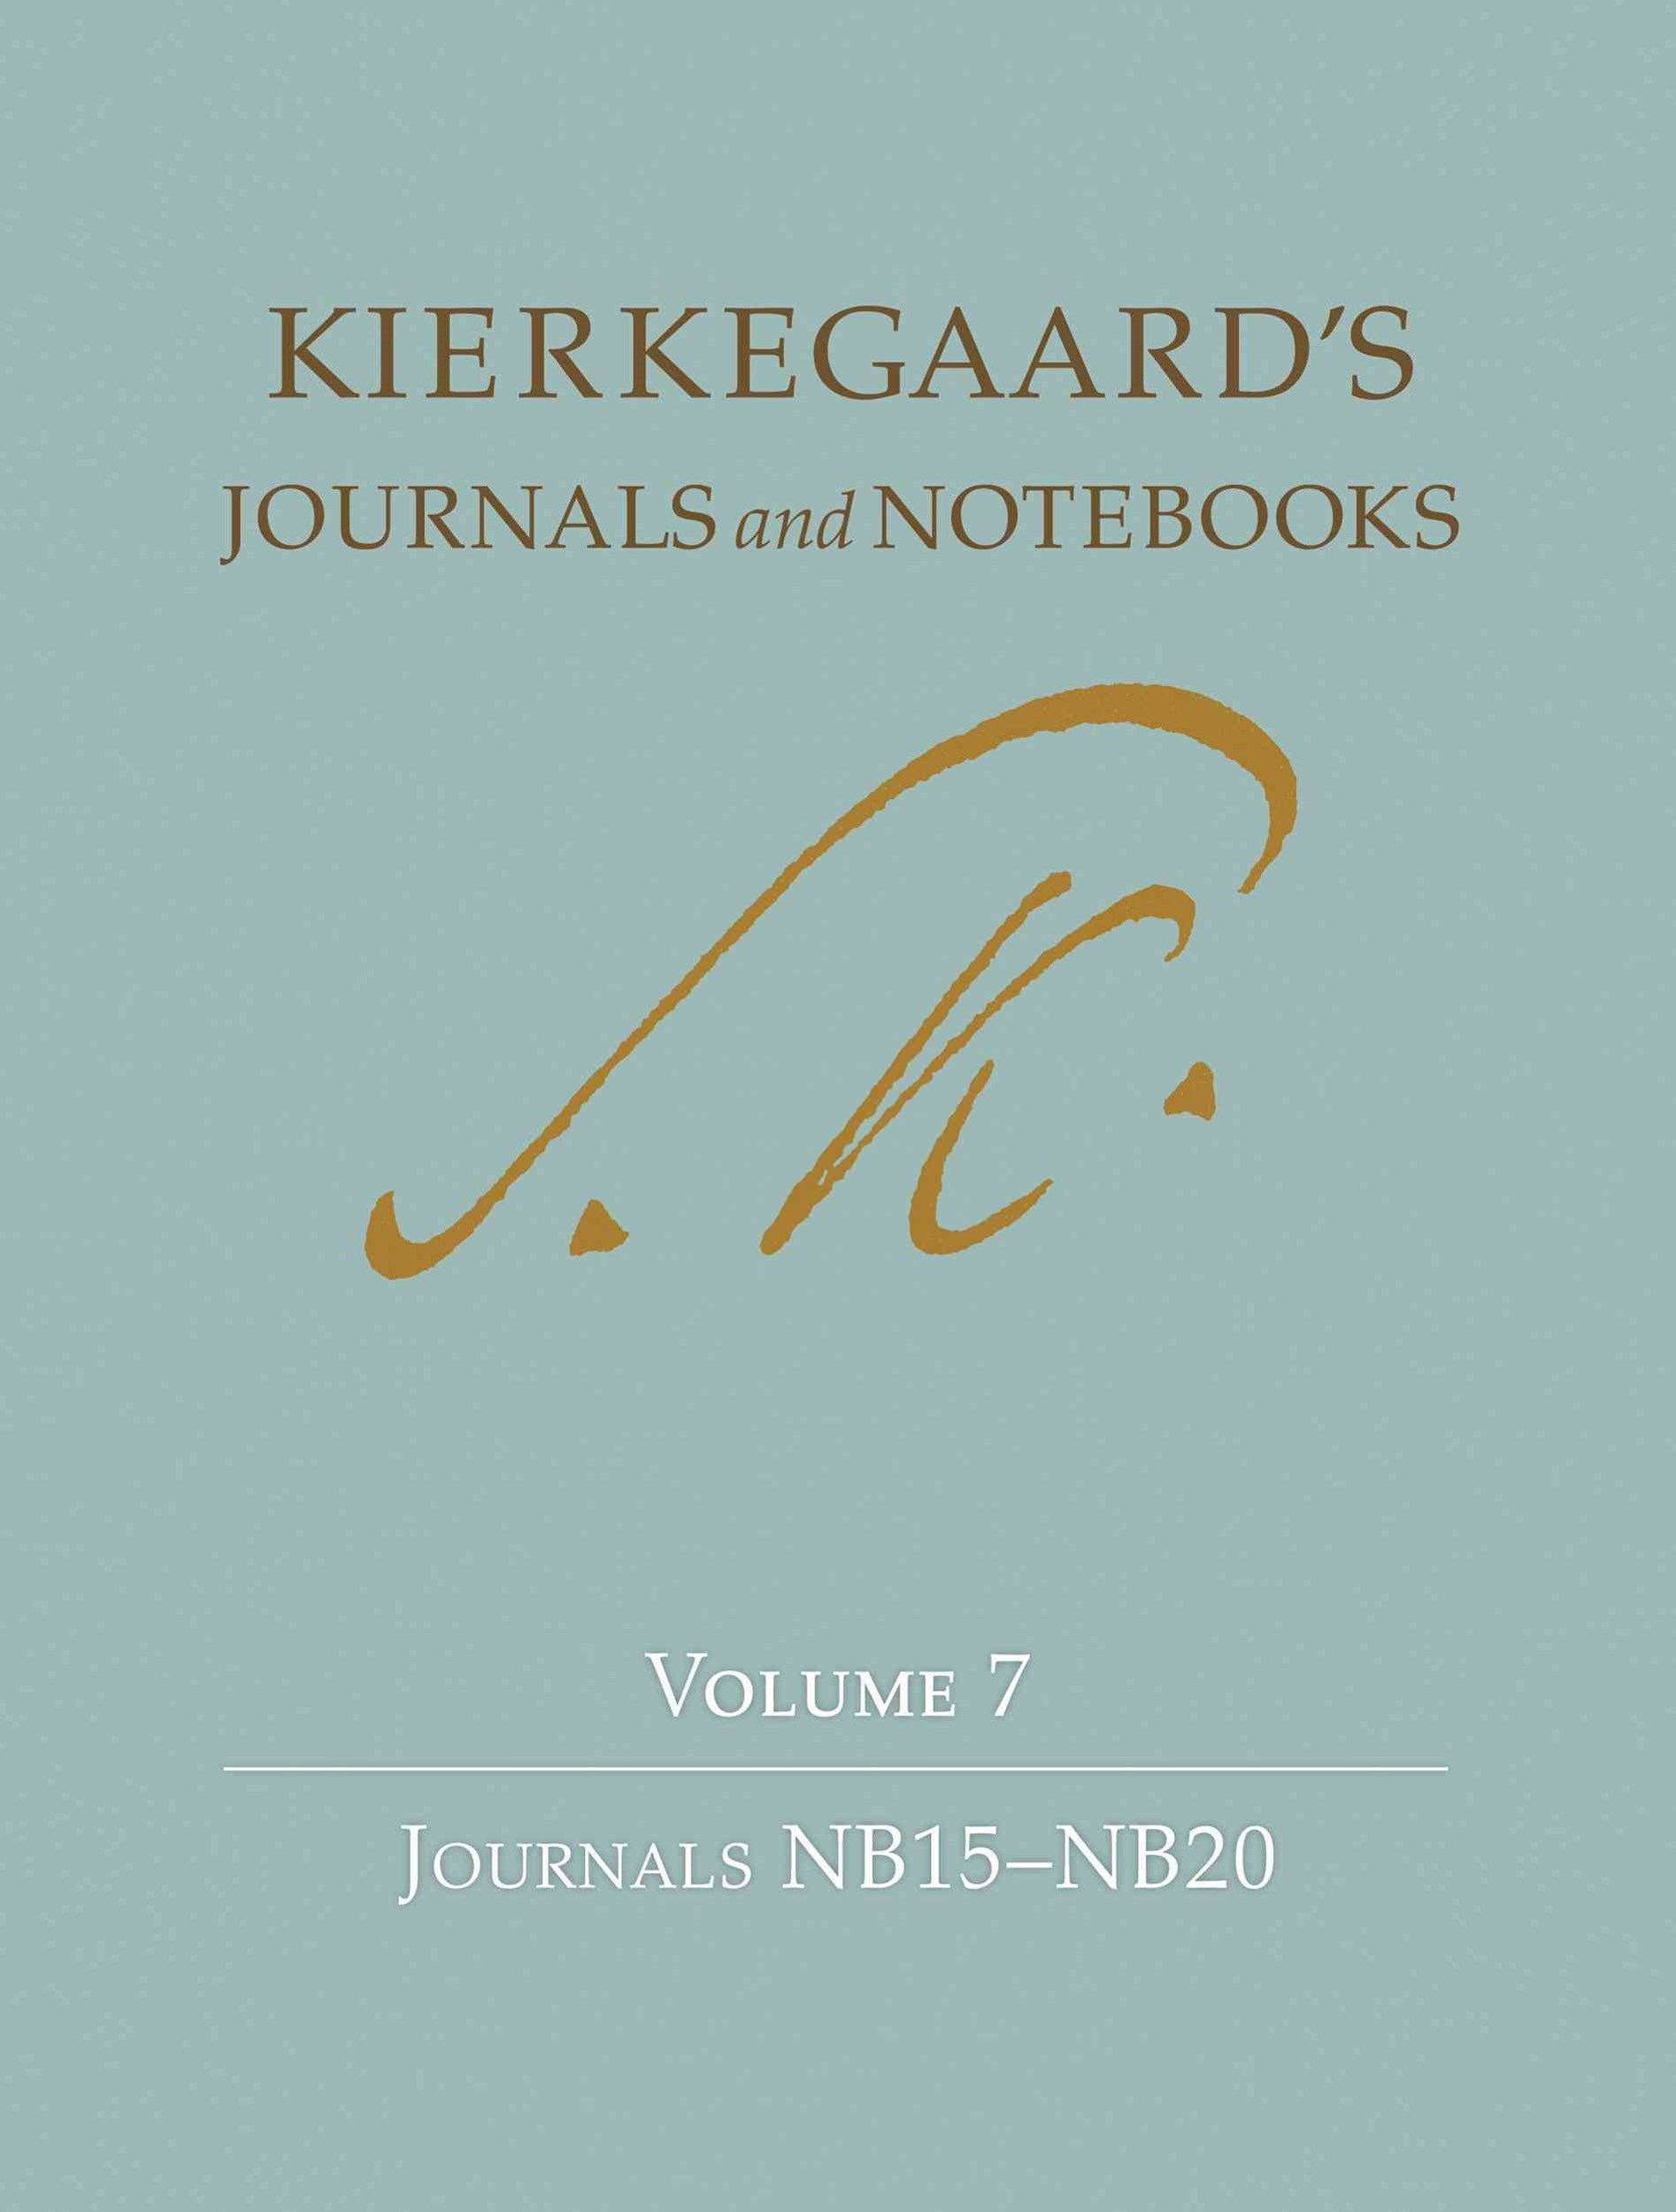 Kierkegaard's Journals and Notebooks: Journals NB15-NB20